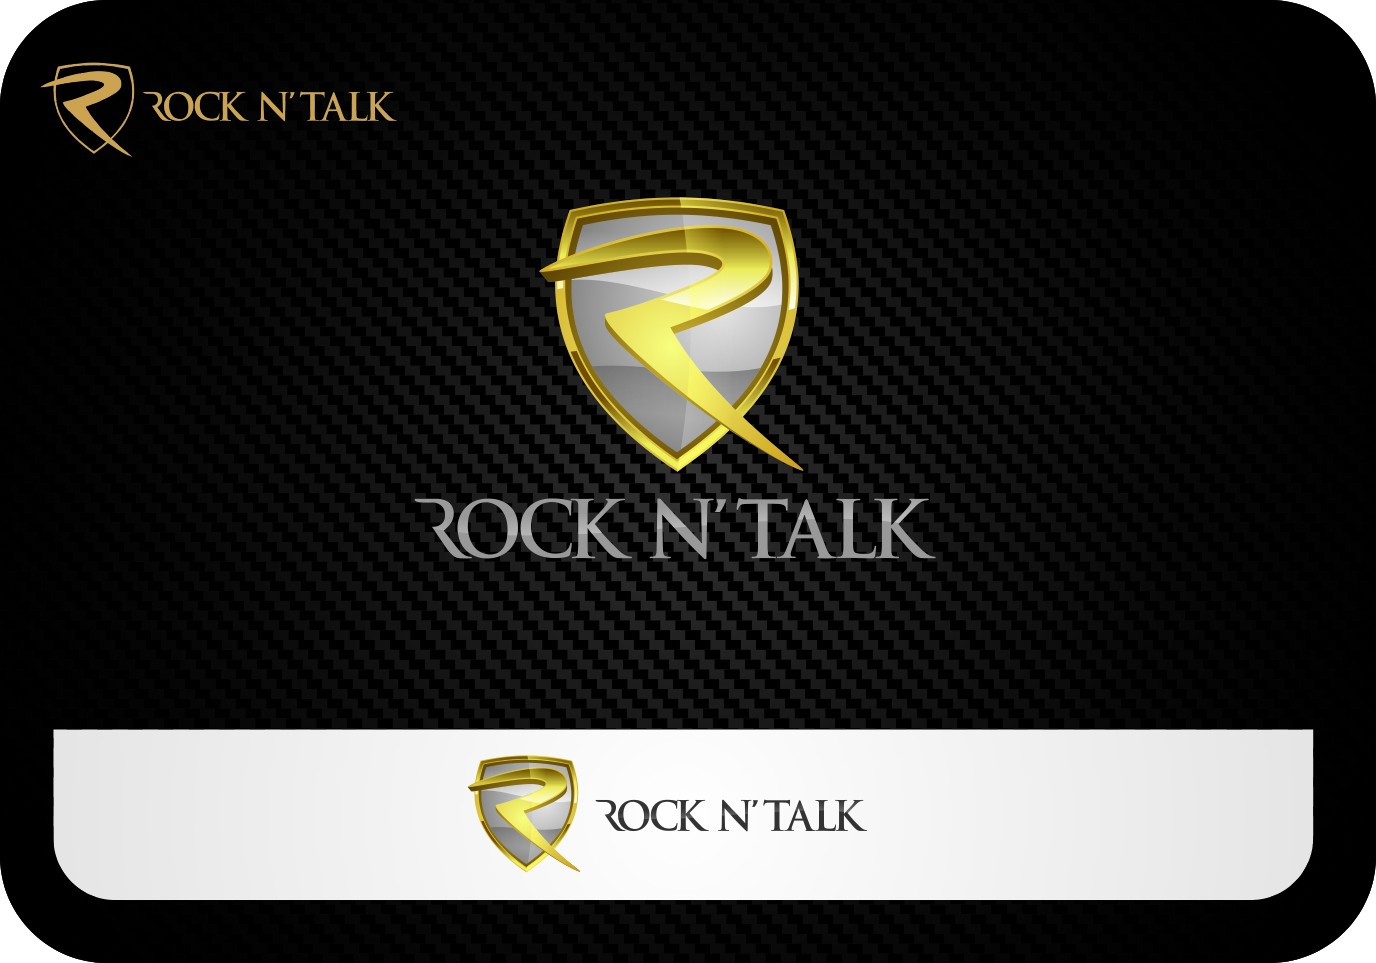 New logo wanted for Rock N' Talk